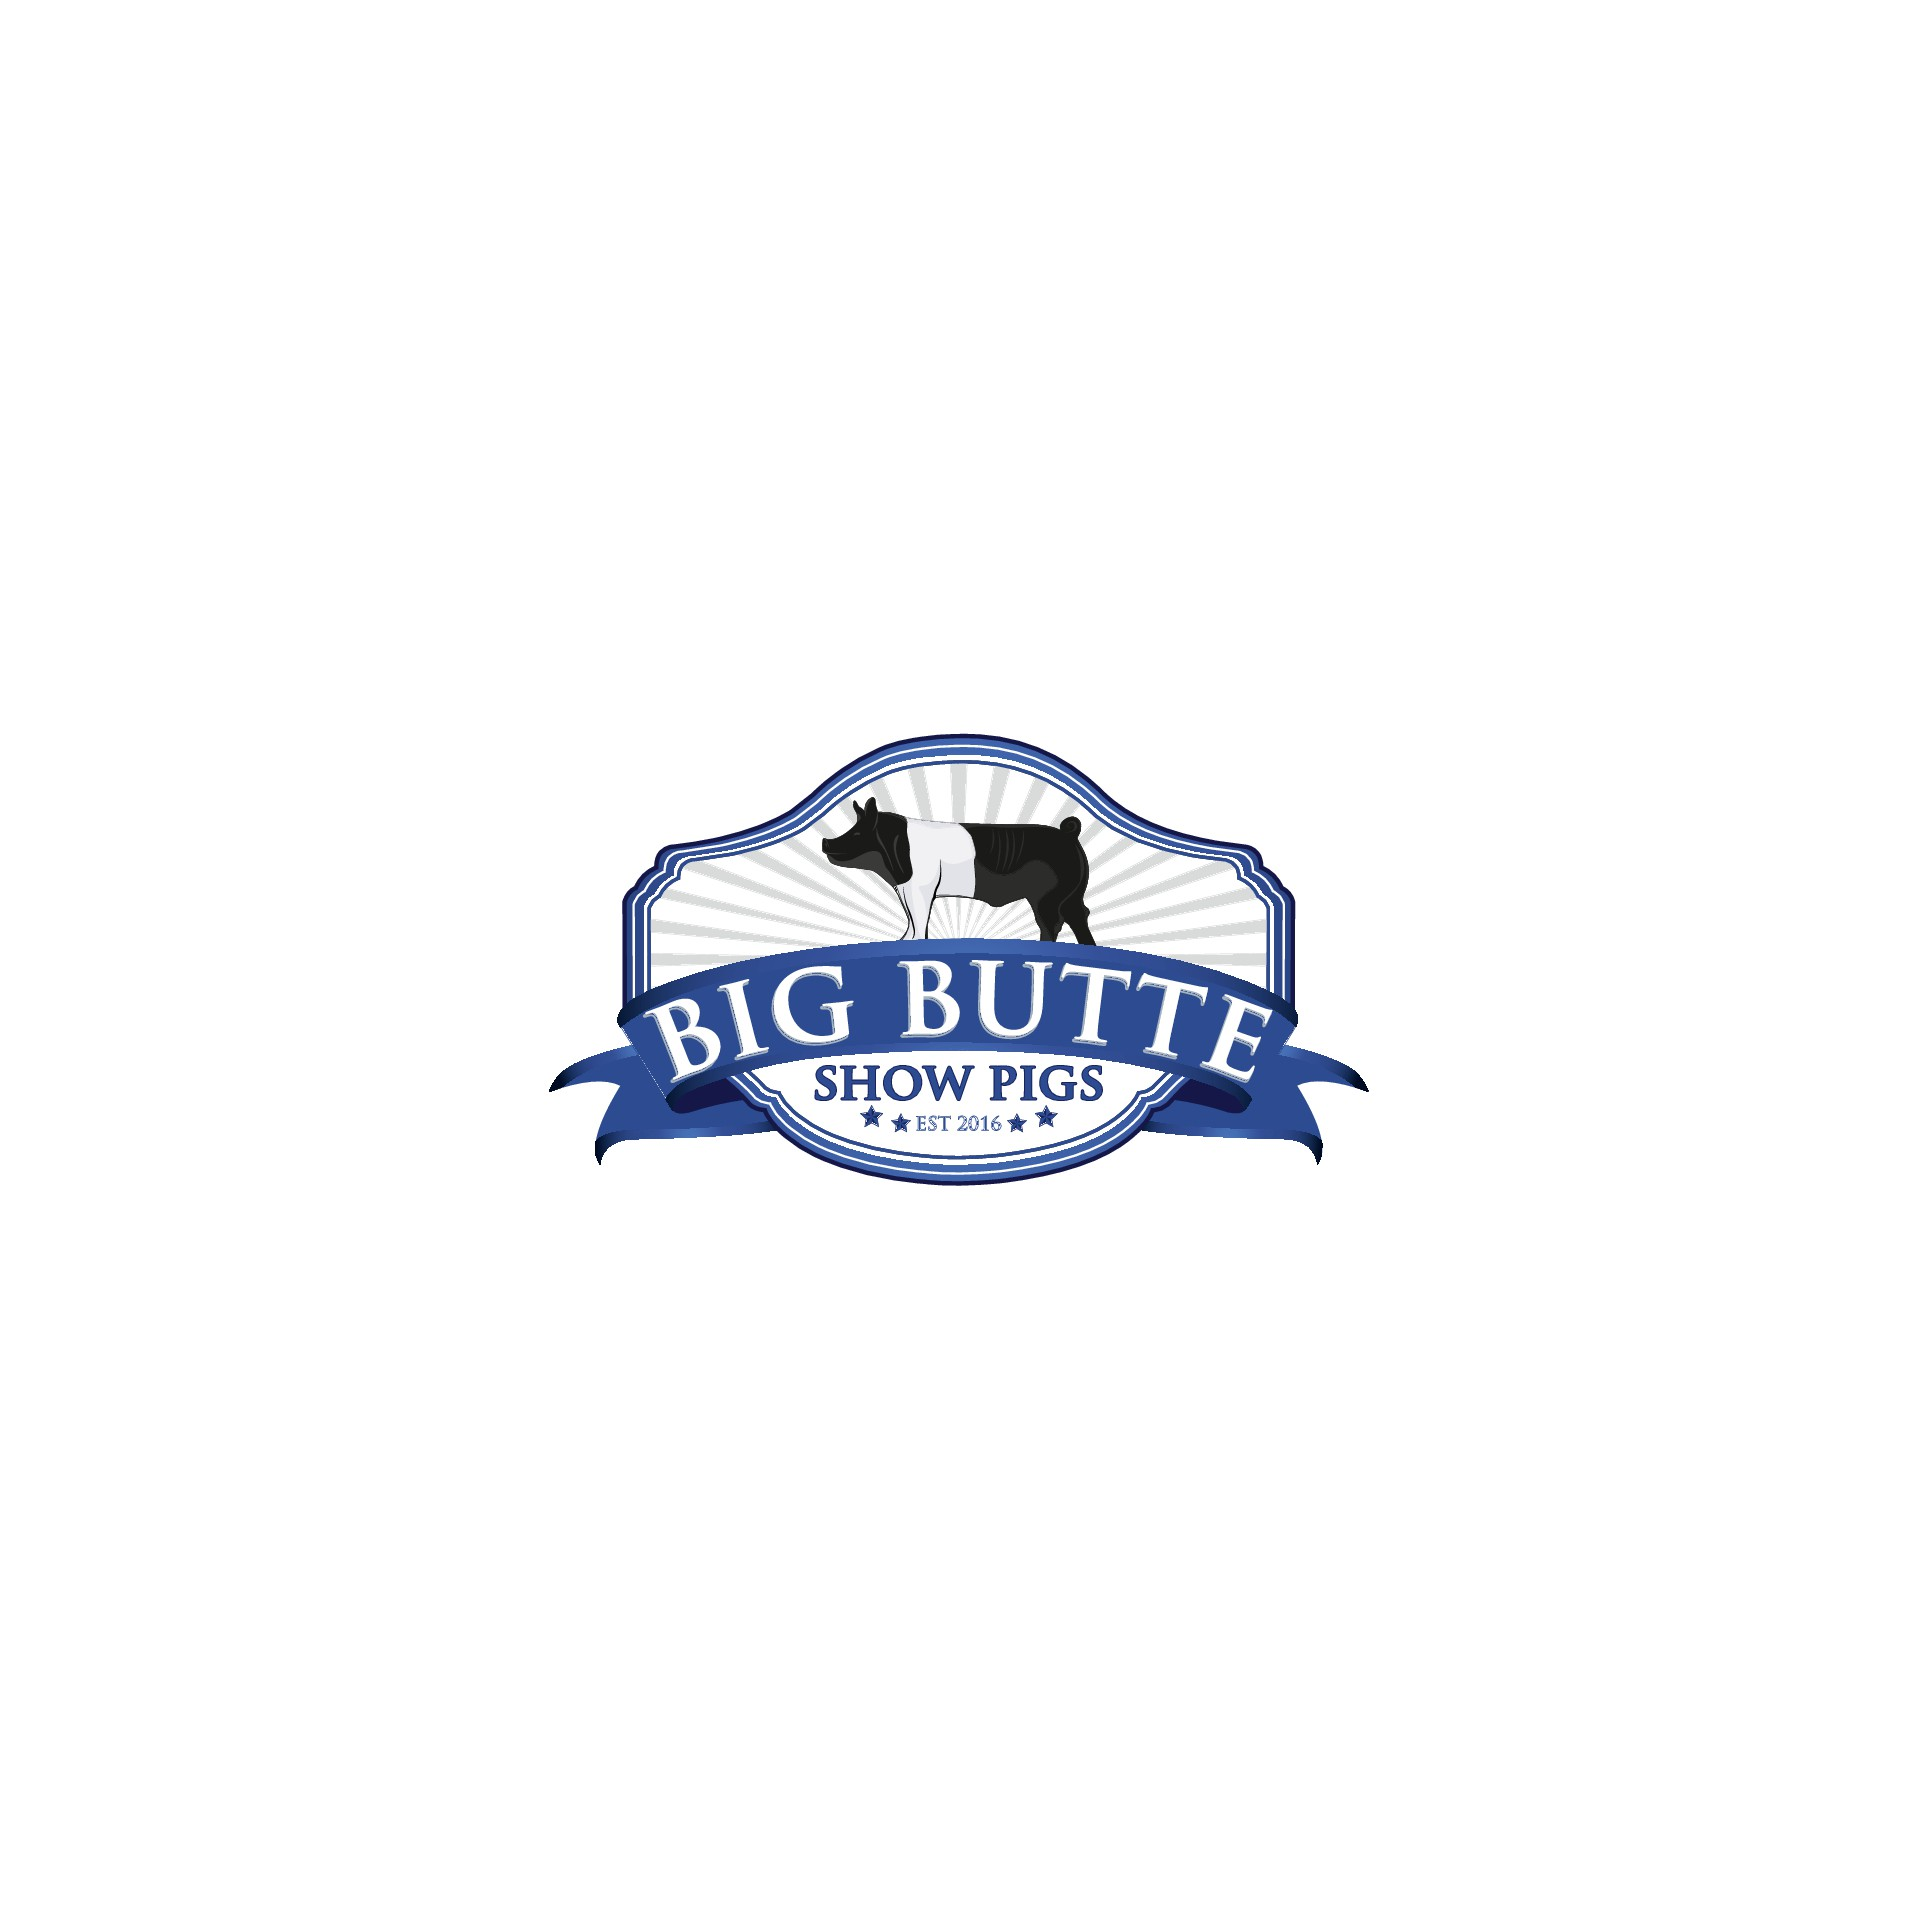 Big Butte Show Pigs needs a LOGO catchy to eyes and easy to remember!